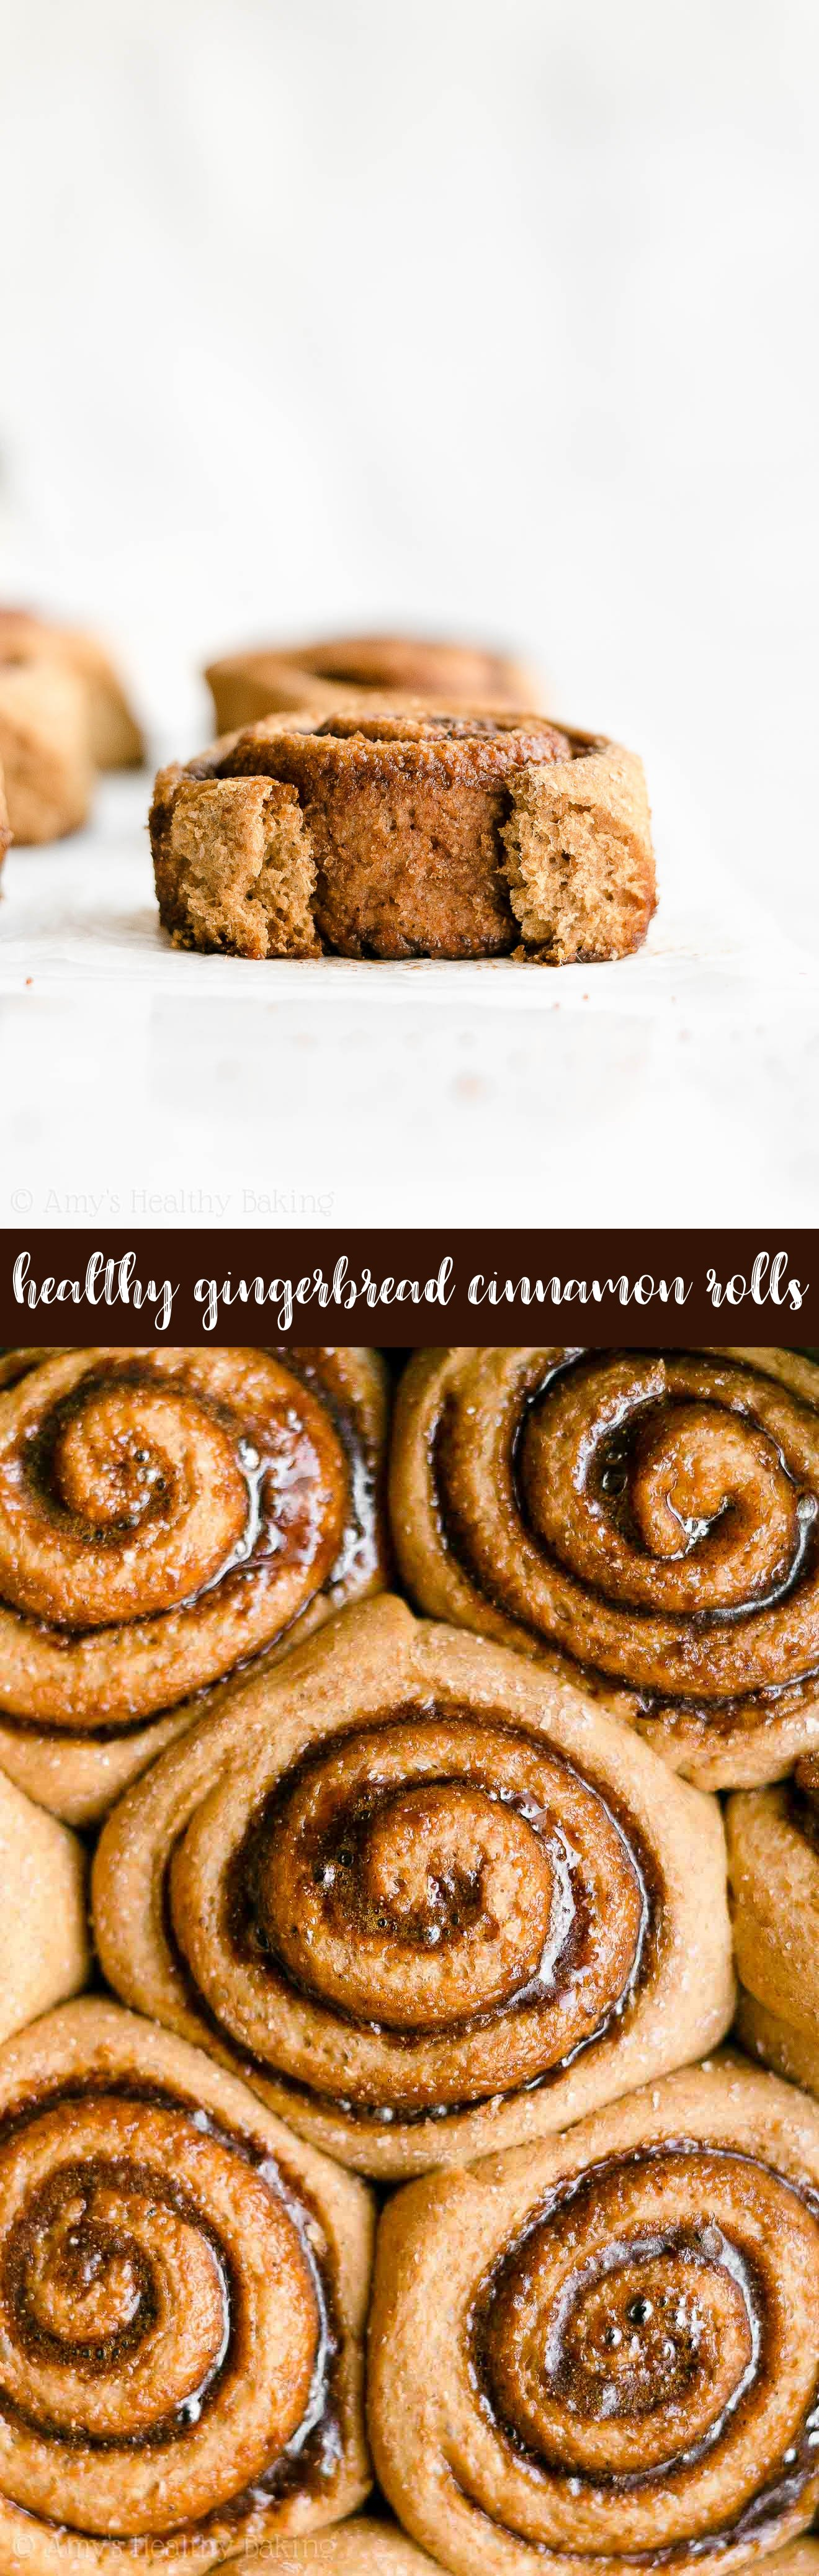 Best Ever Healthy Homemade Clean Eating Low Calorie Gingerbread Cinnamon Rolls